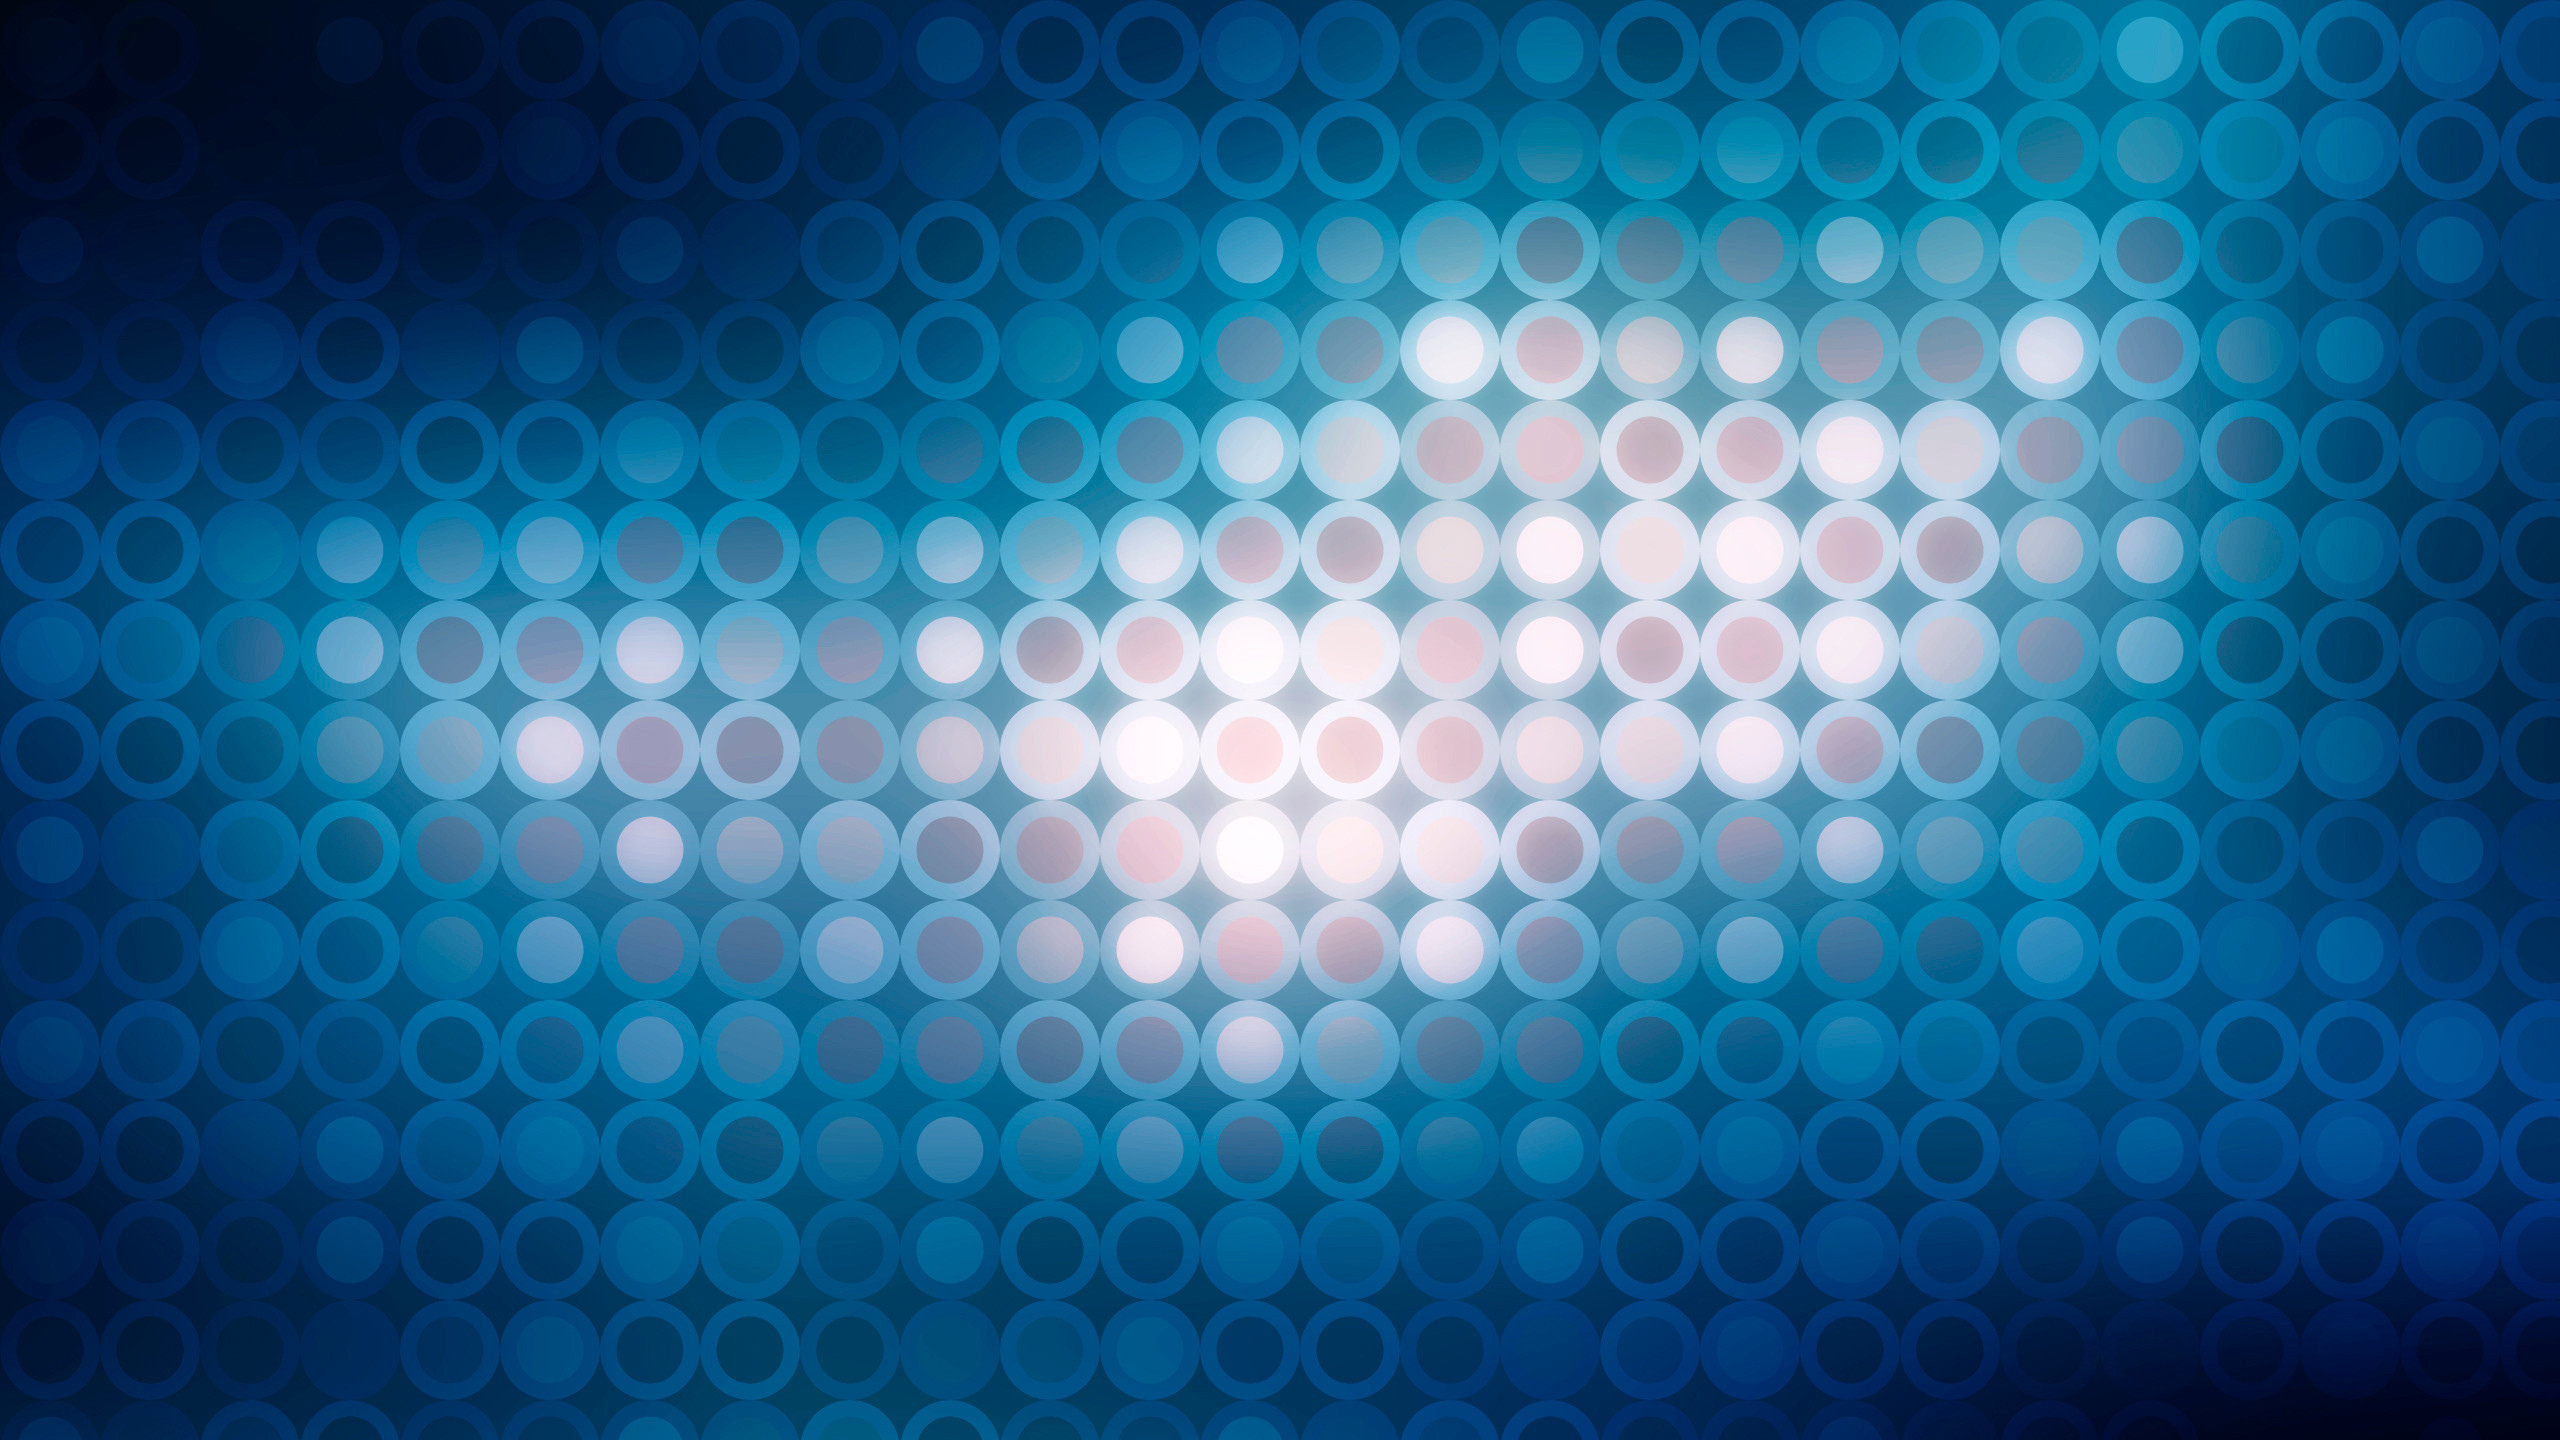 Abstract Backgrounds & Patterns » Background Labs